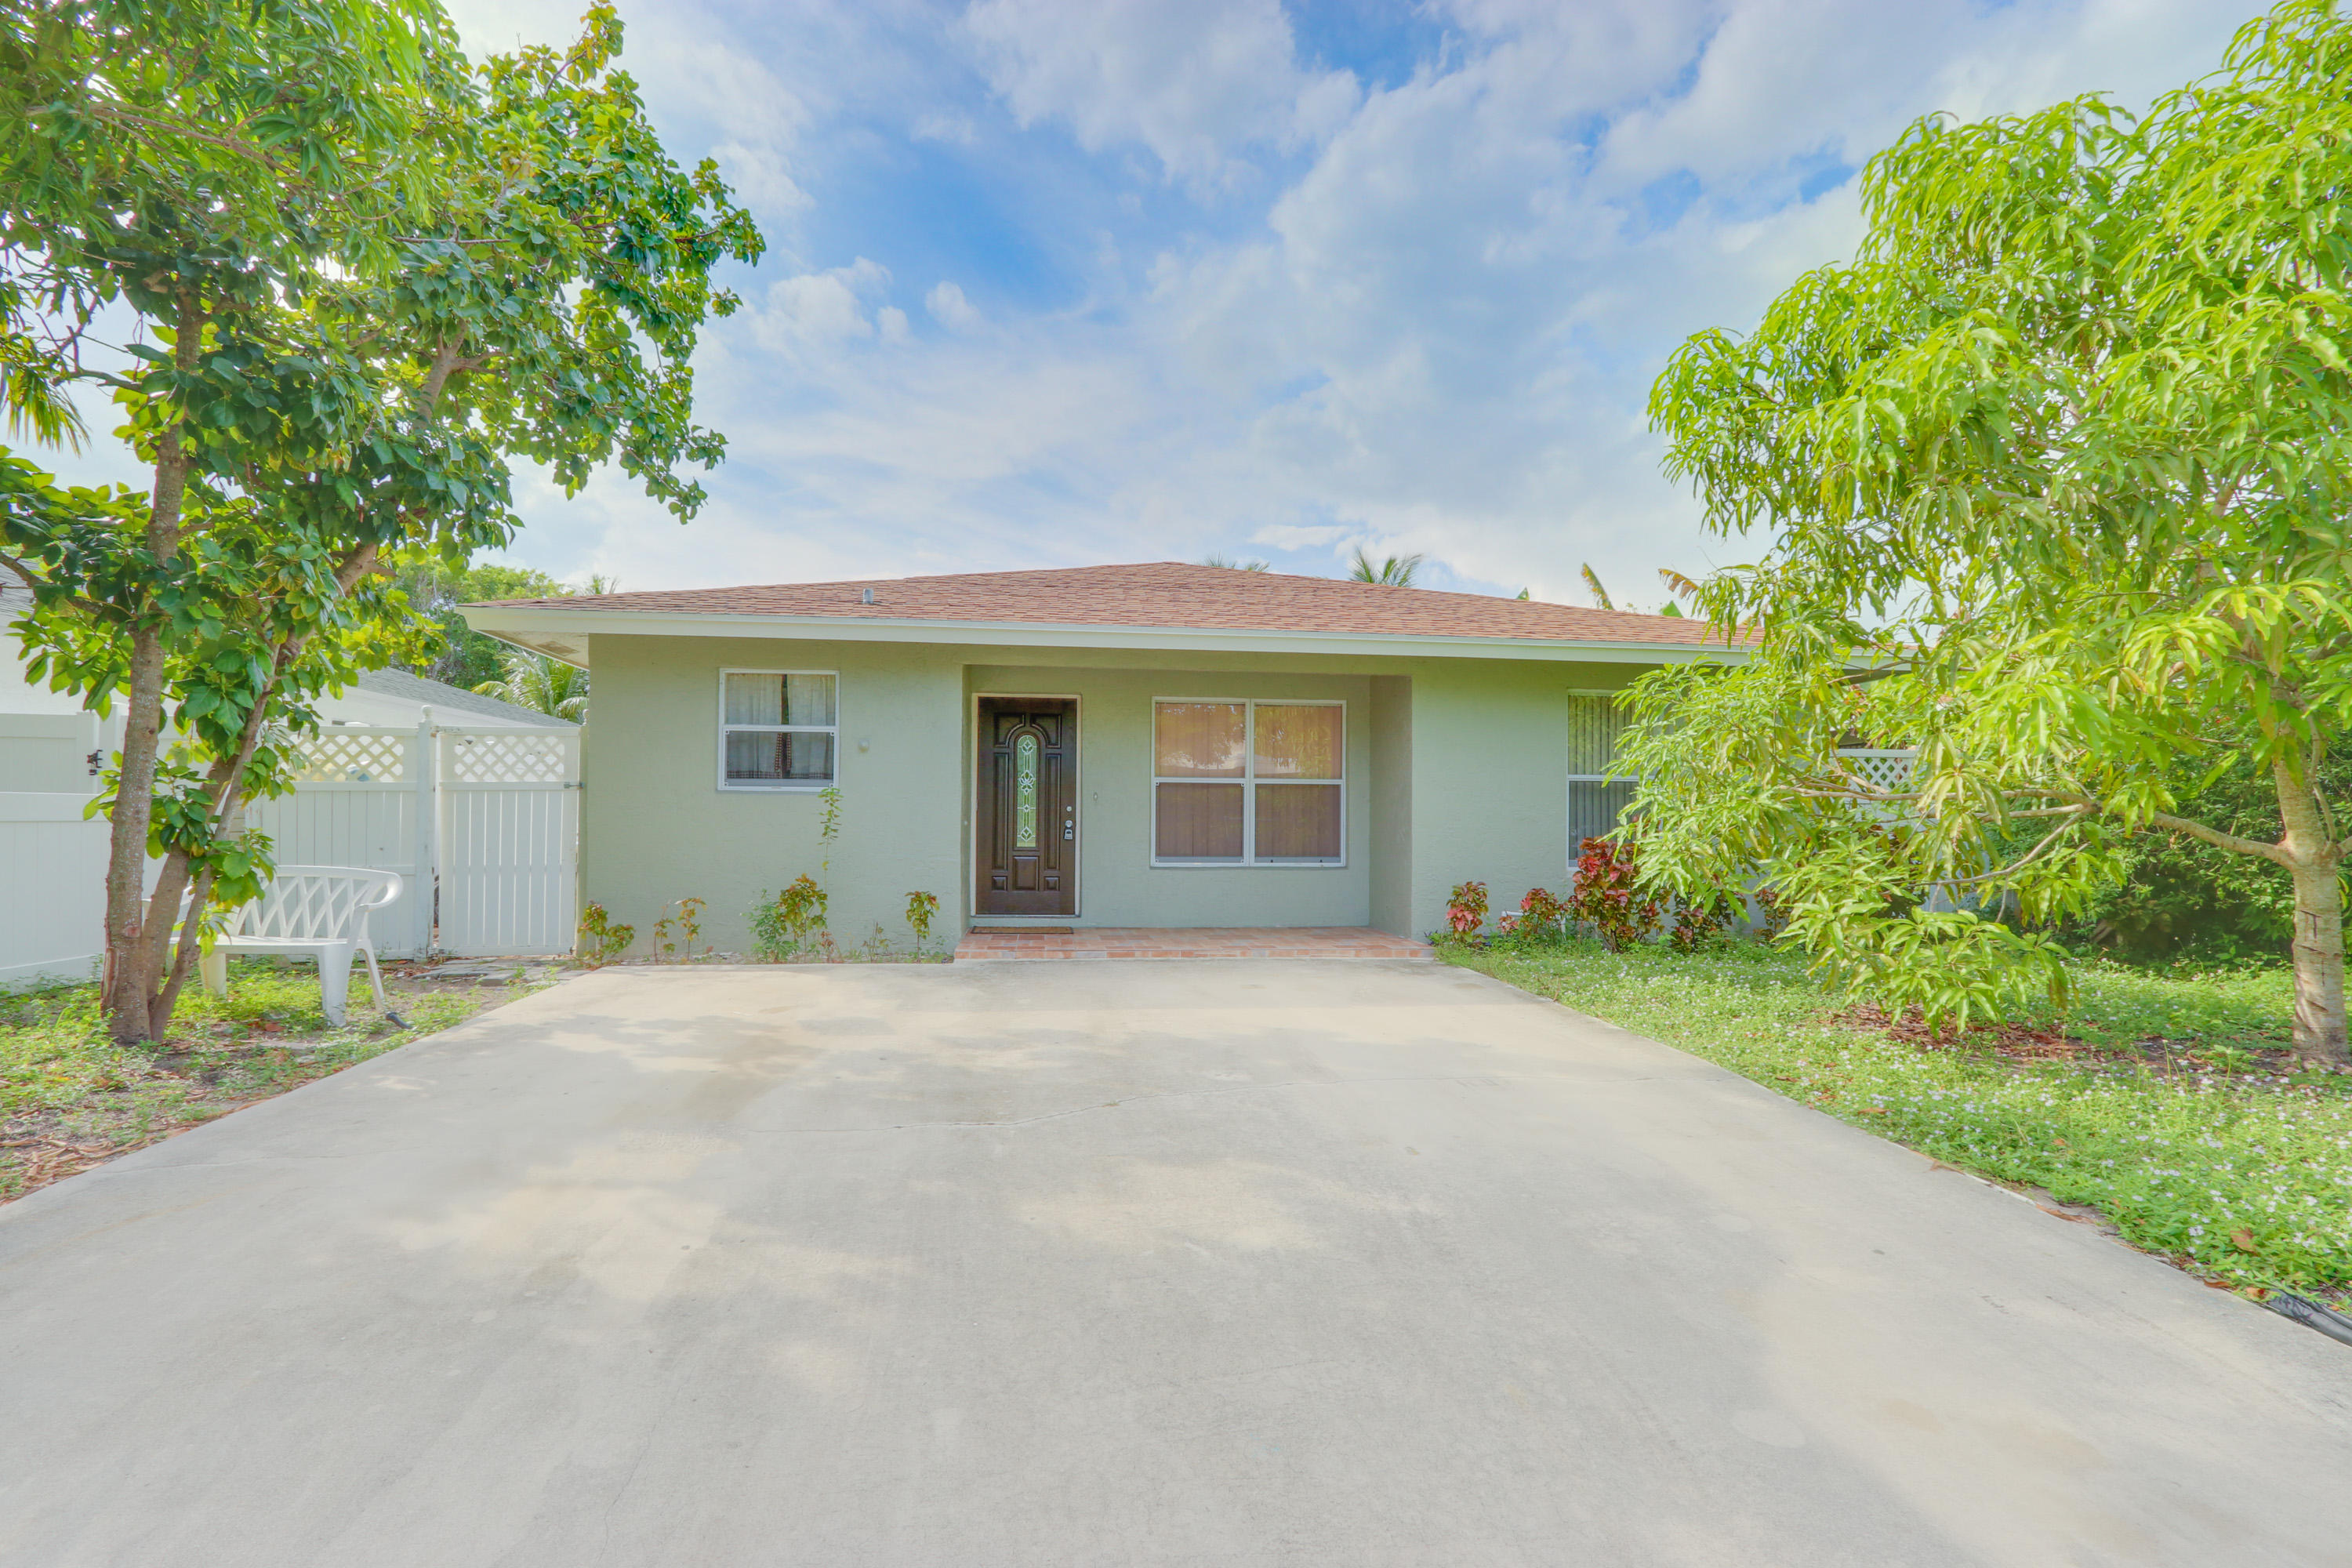 DELRAY TOWN OF home 312 NW 1st Avenue Delray Beach FL 33444